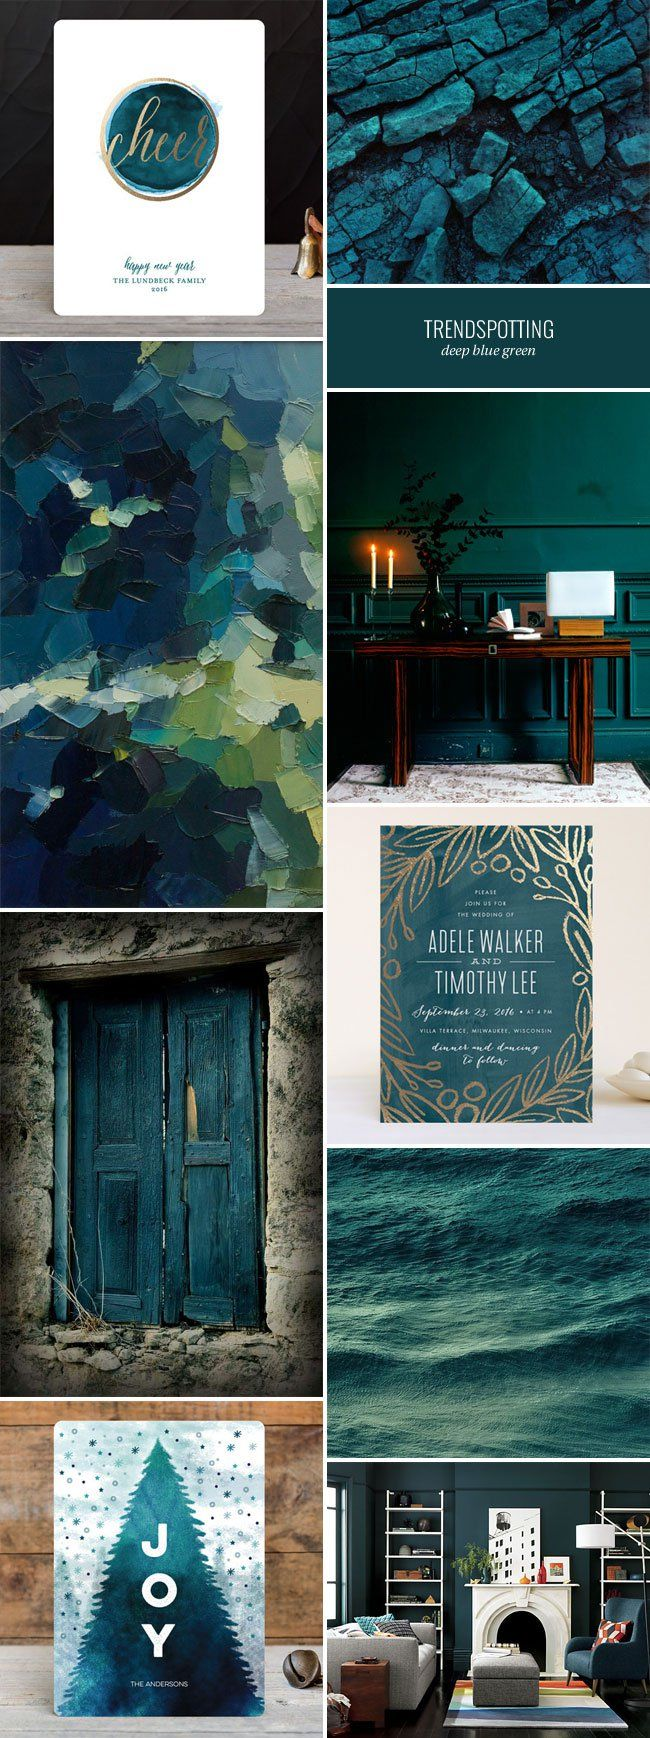 Bedroom colors blue and green - 2016 Stationery Color Trends Deep Blue Green